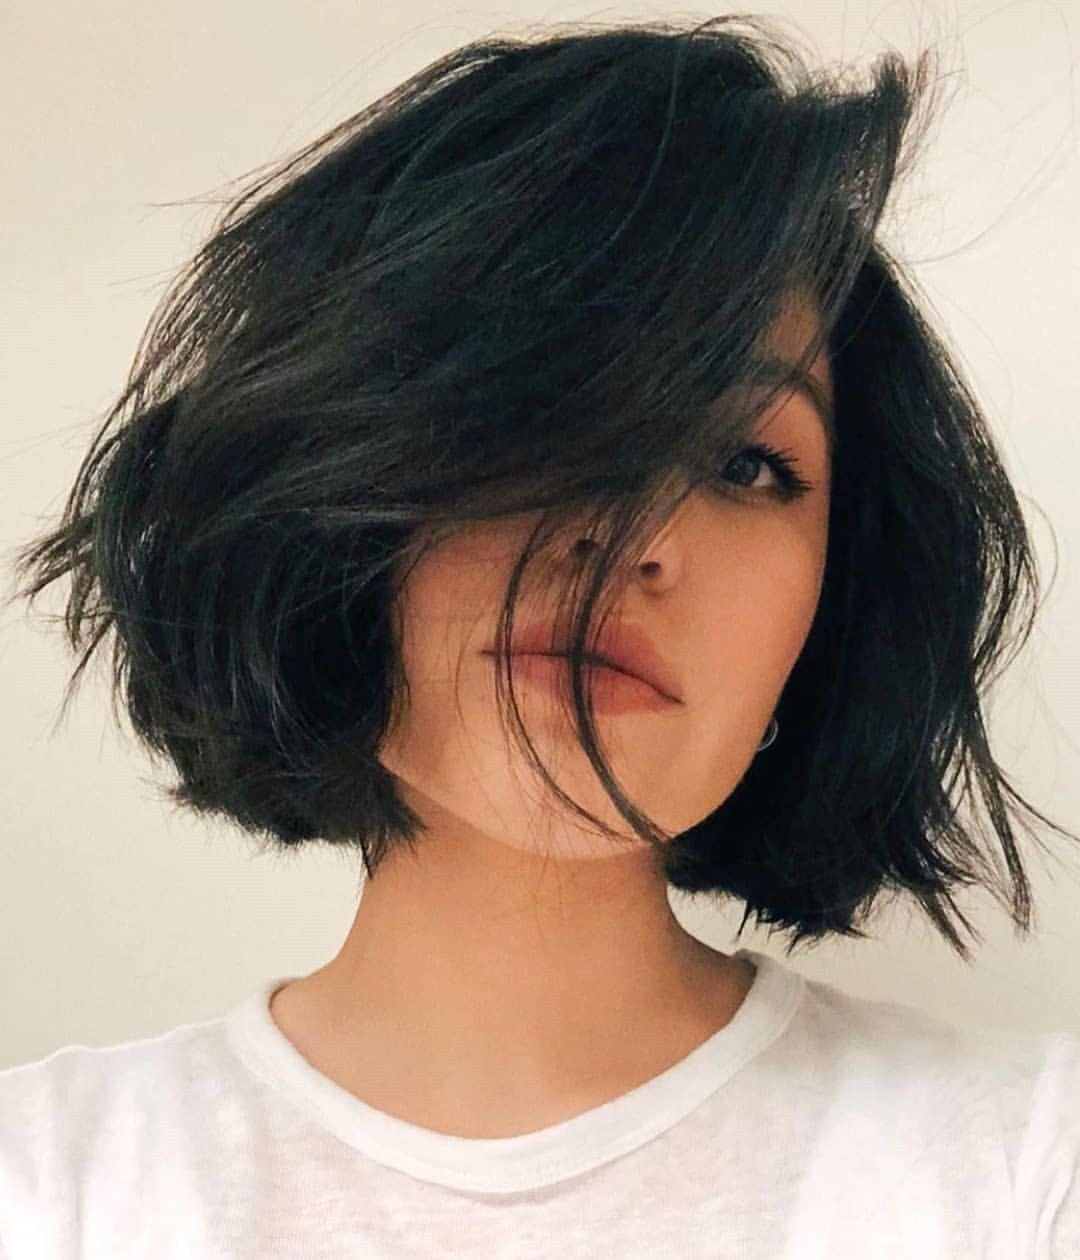 100+ Most Edgy Short Hairstyles for Women 2020 -   11 edgy hair 2019 ideas